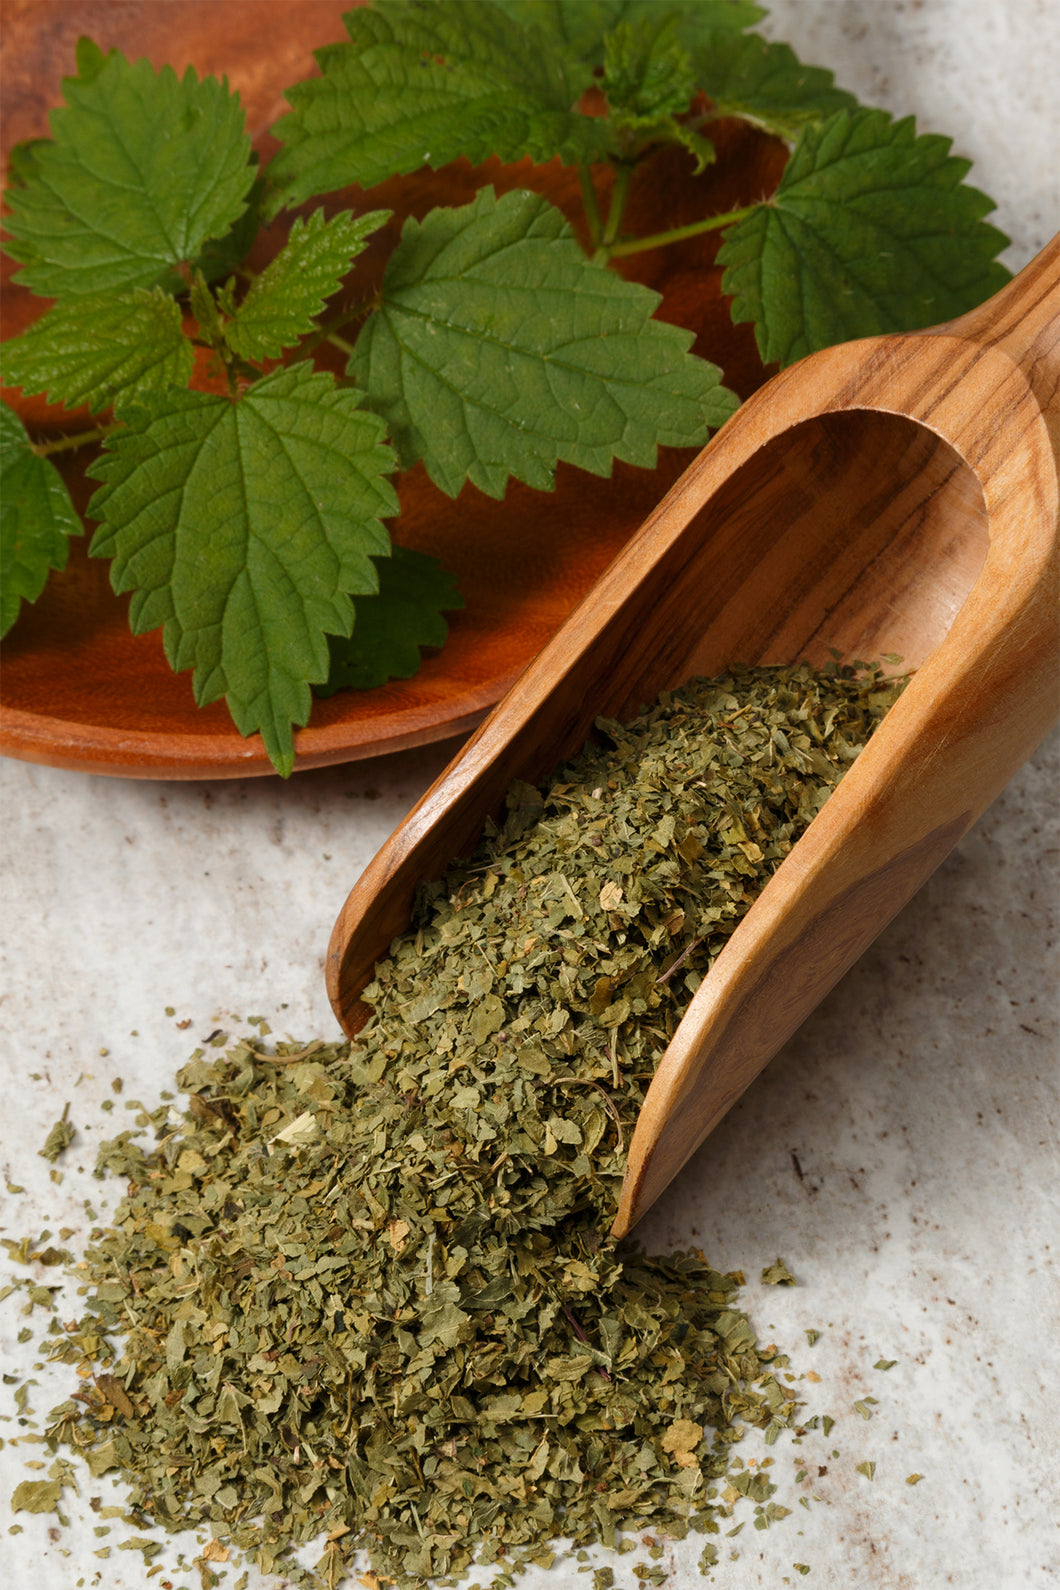 Oregon's Wild Harvest Non-GMO, Organic Nettle Leaf Cut-and-Sift